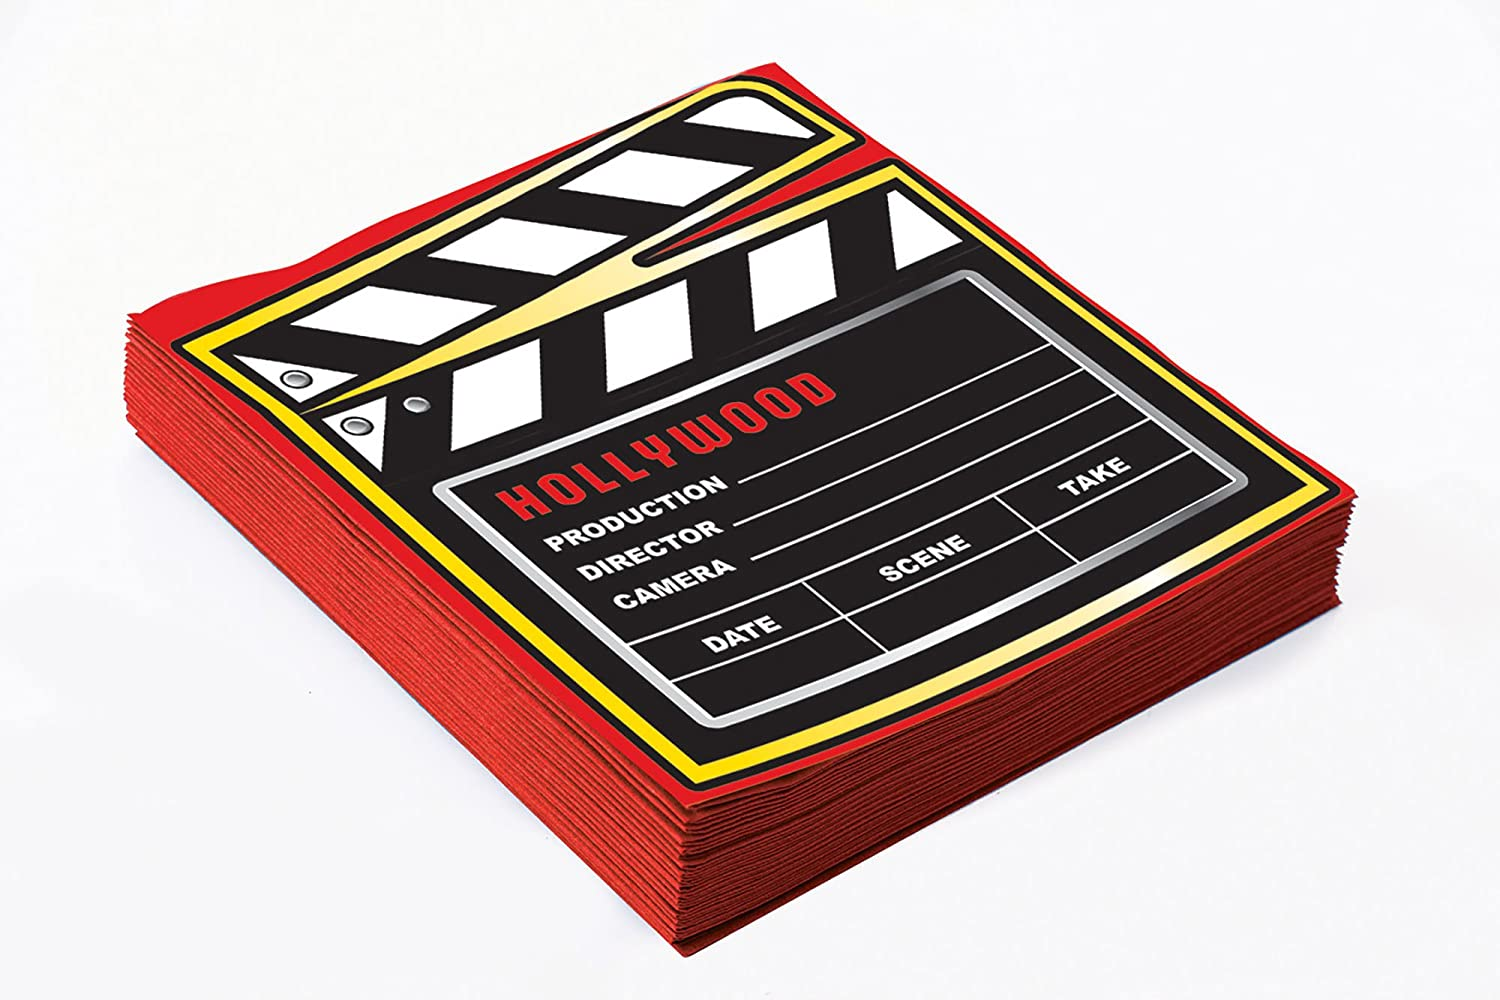 At the Movies- Décor Napkin 13'' (16pcs) Partyware for Film & TV Hollywood Party Bristol Novelties